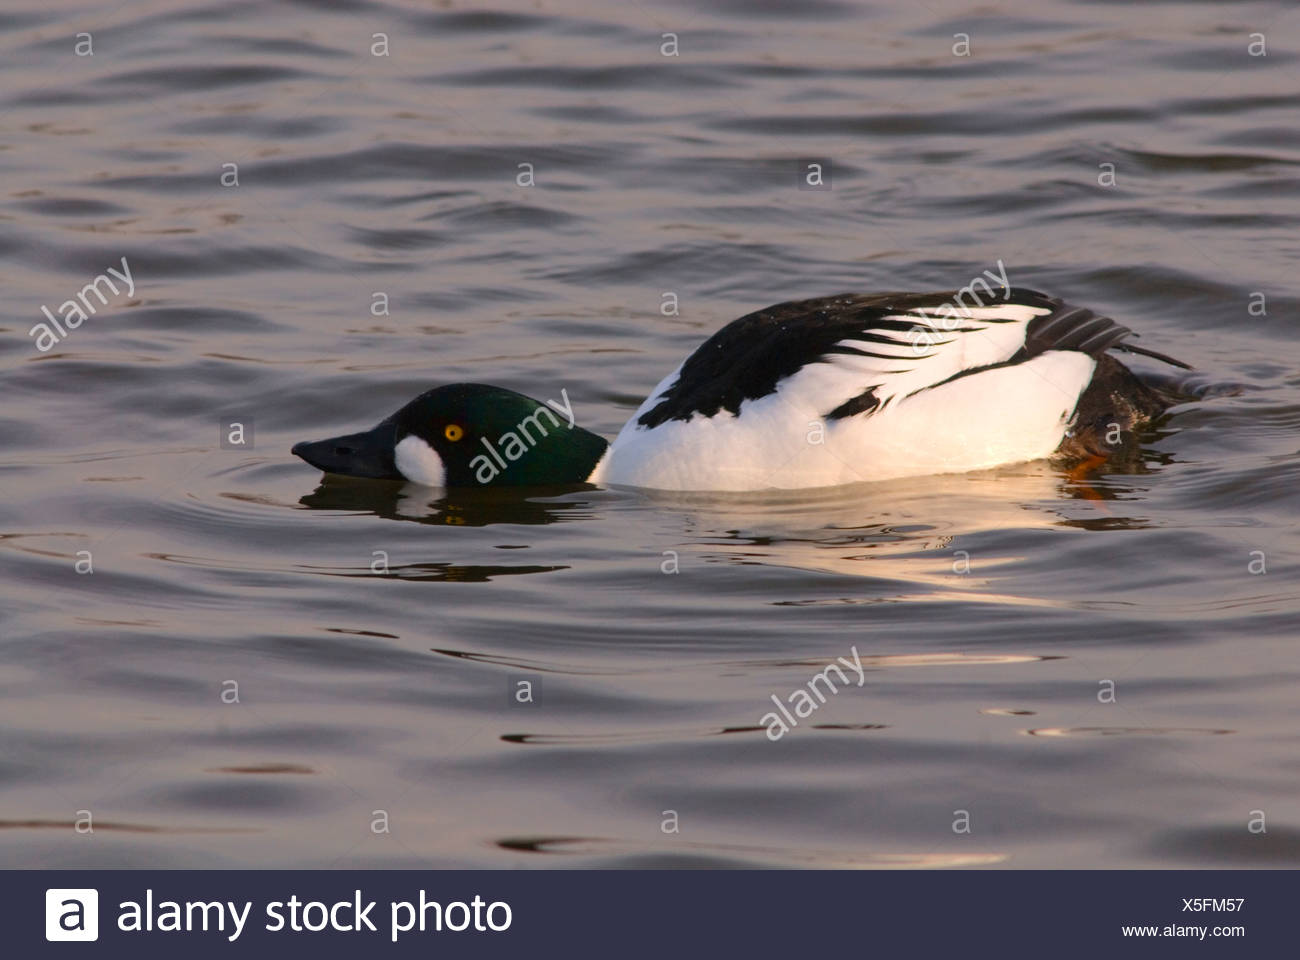 duck mating behavior